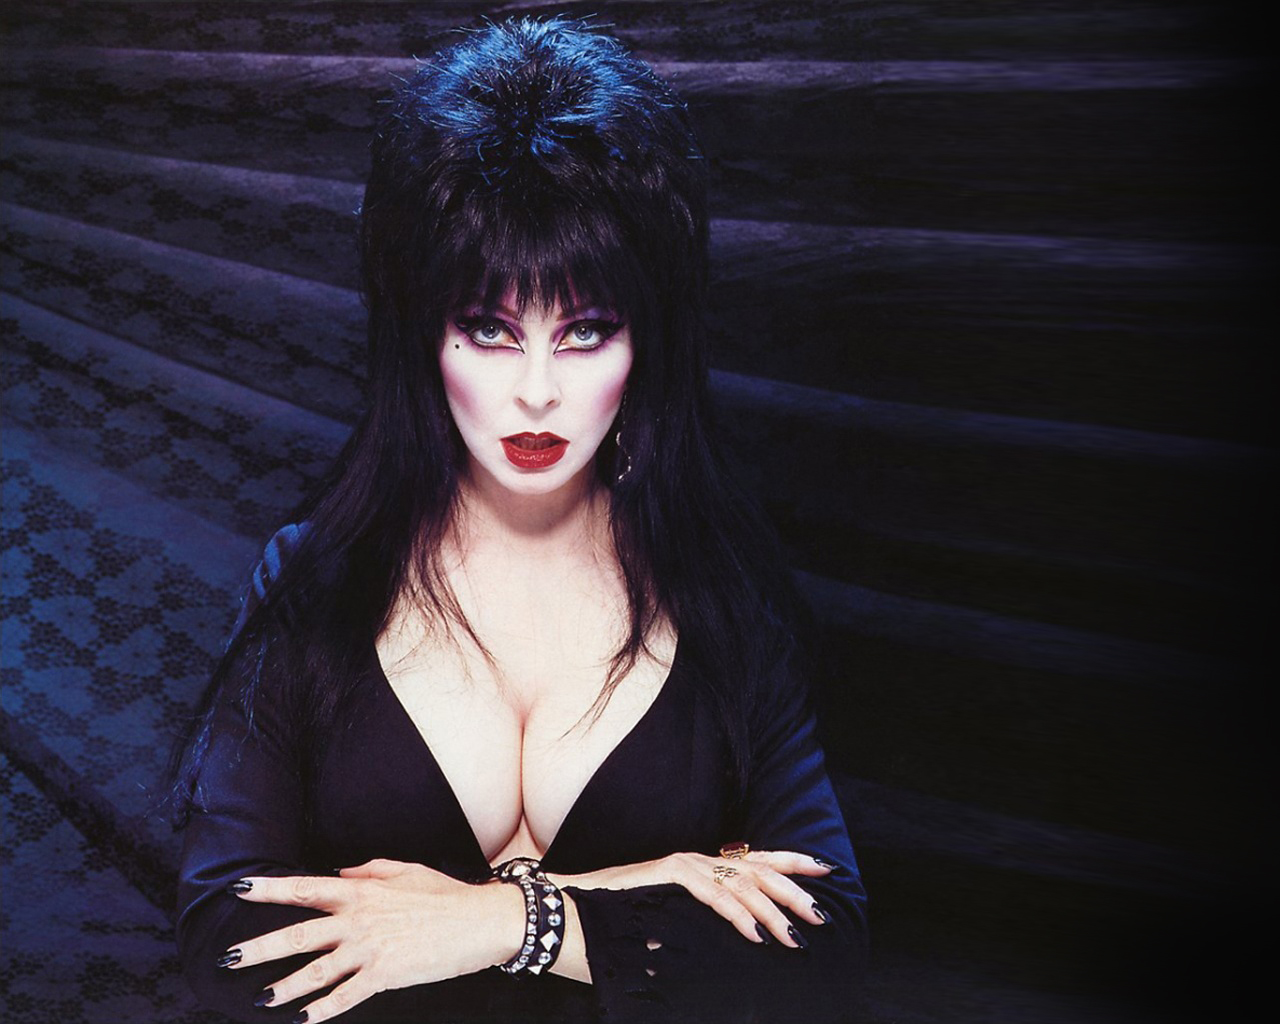 Cleavage Elvira nudes (86 foto and video), Pussy, Fappening, Twitter, panties 2020